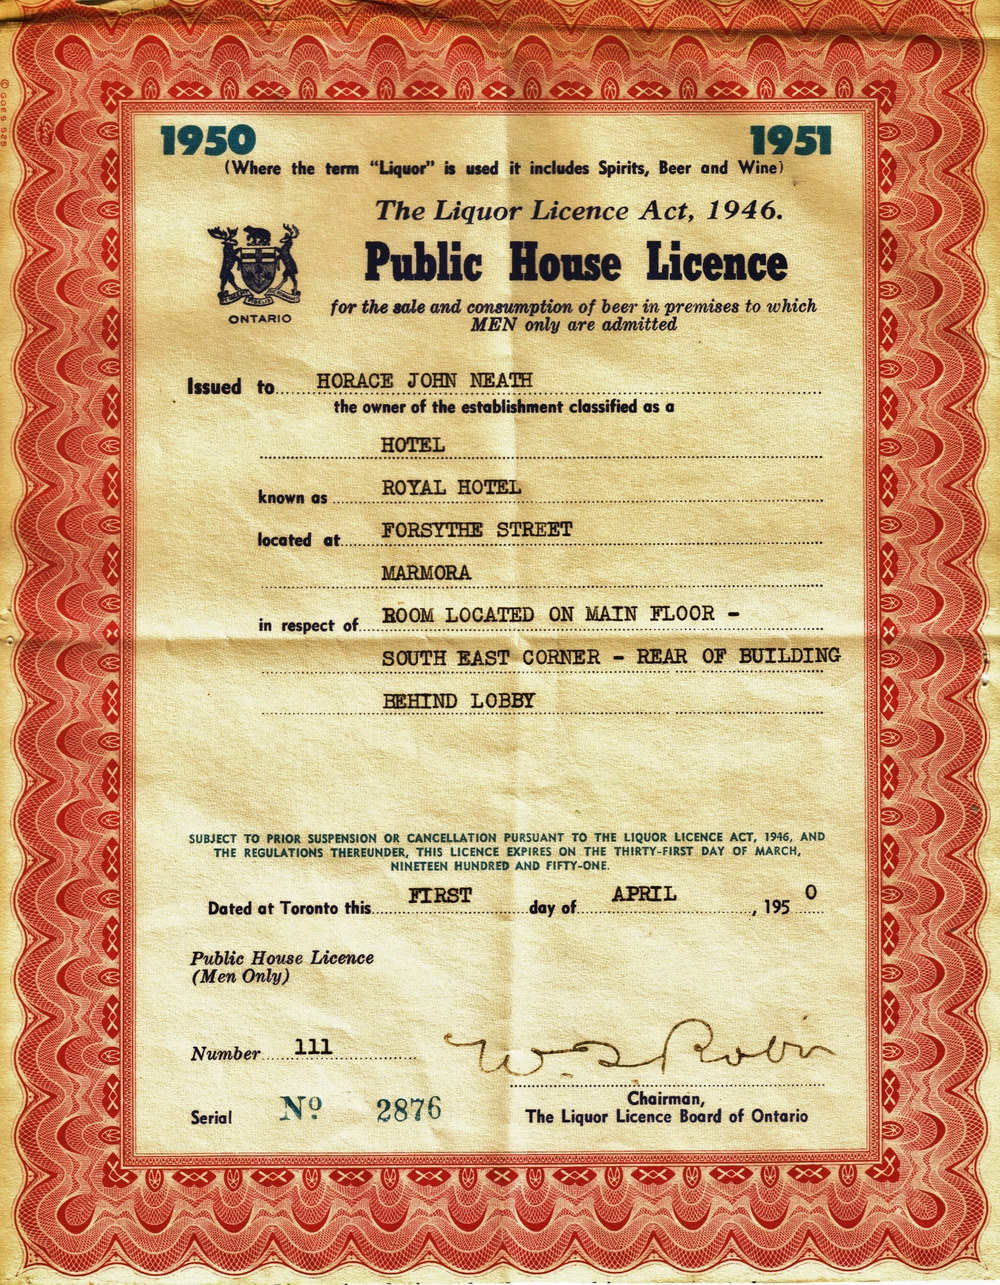 Photo of Licence sent to us by grandson,  Russell Foster